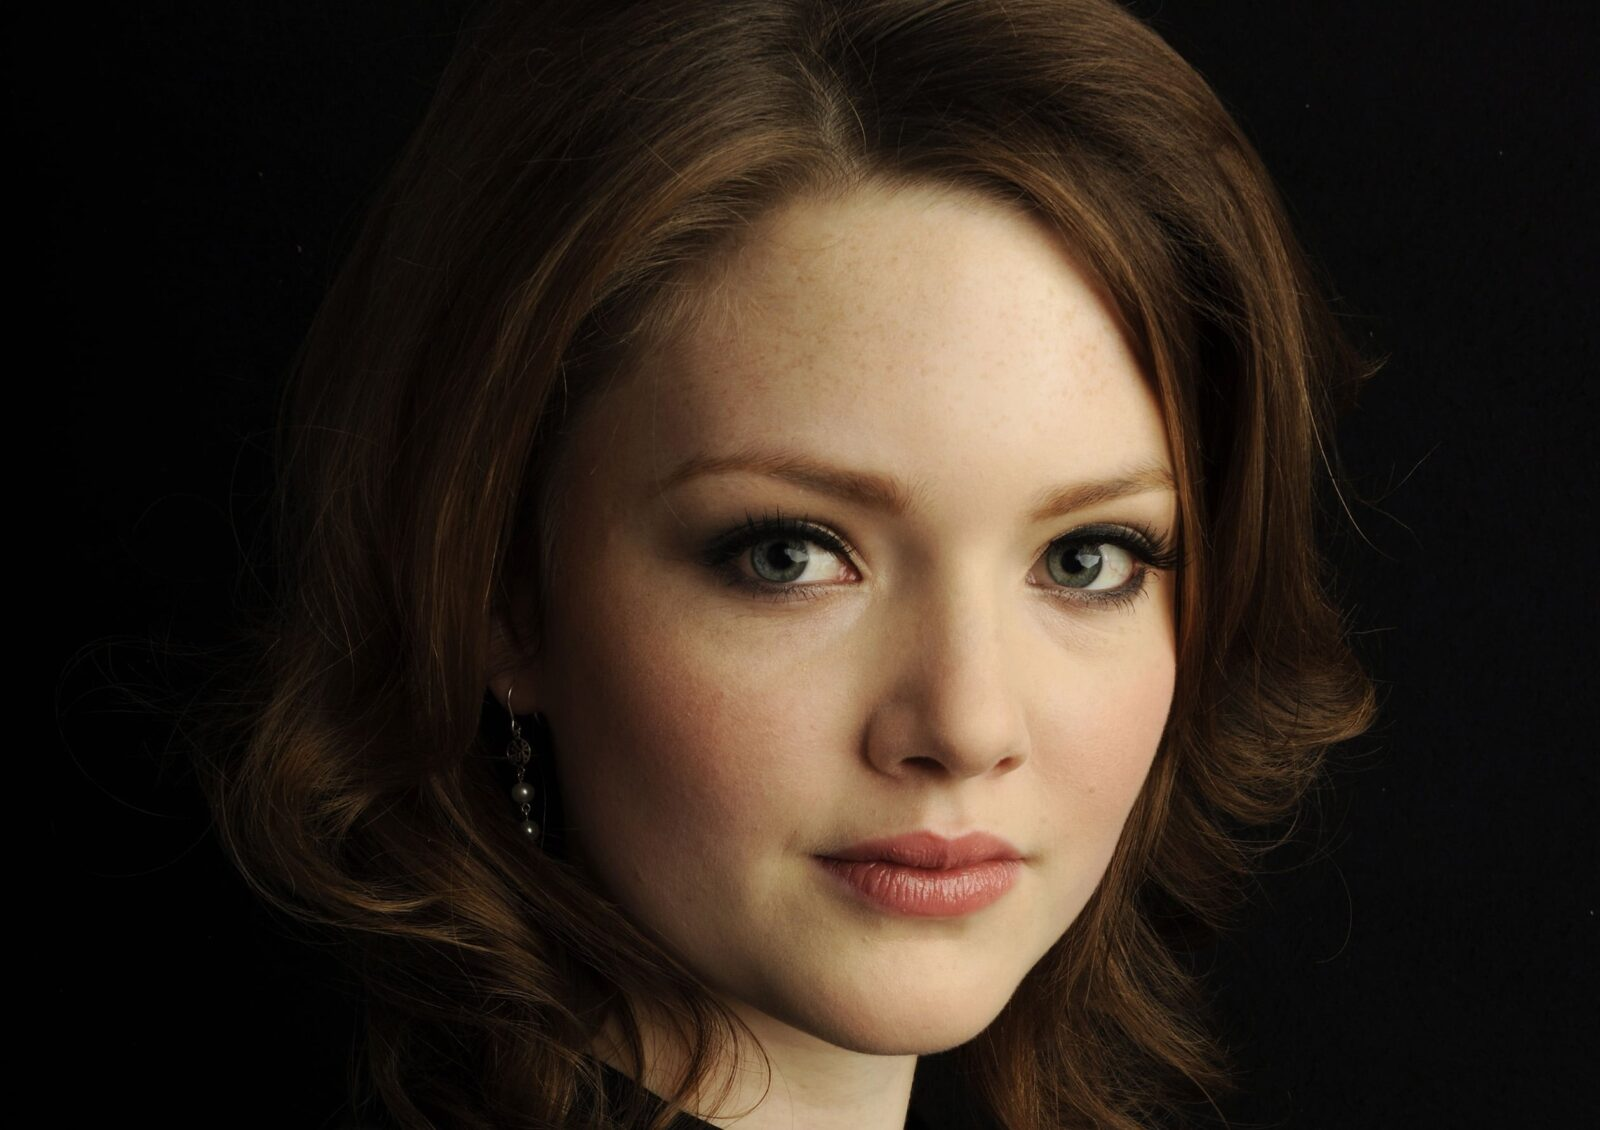 Download Wallpapers Cars Bikes Holliday Grainger Hd Wallpapers Free Download